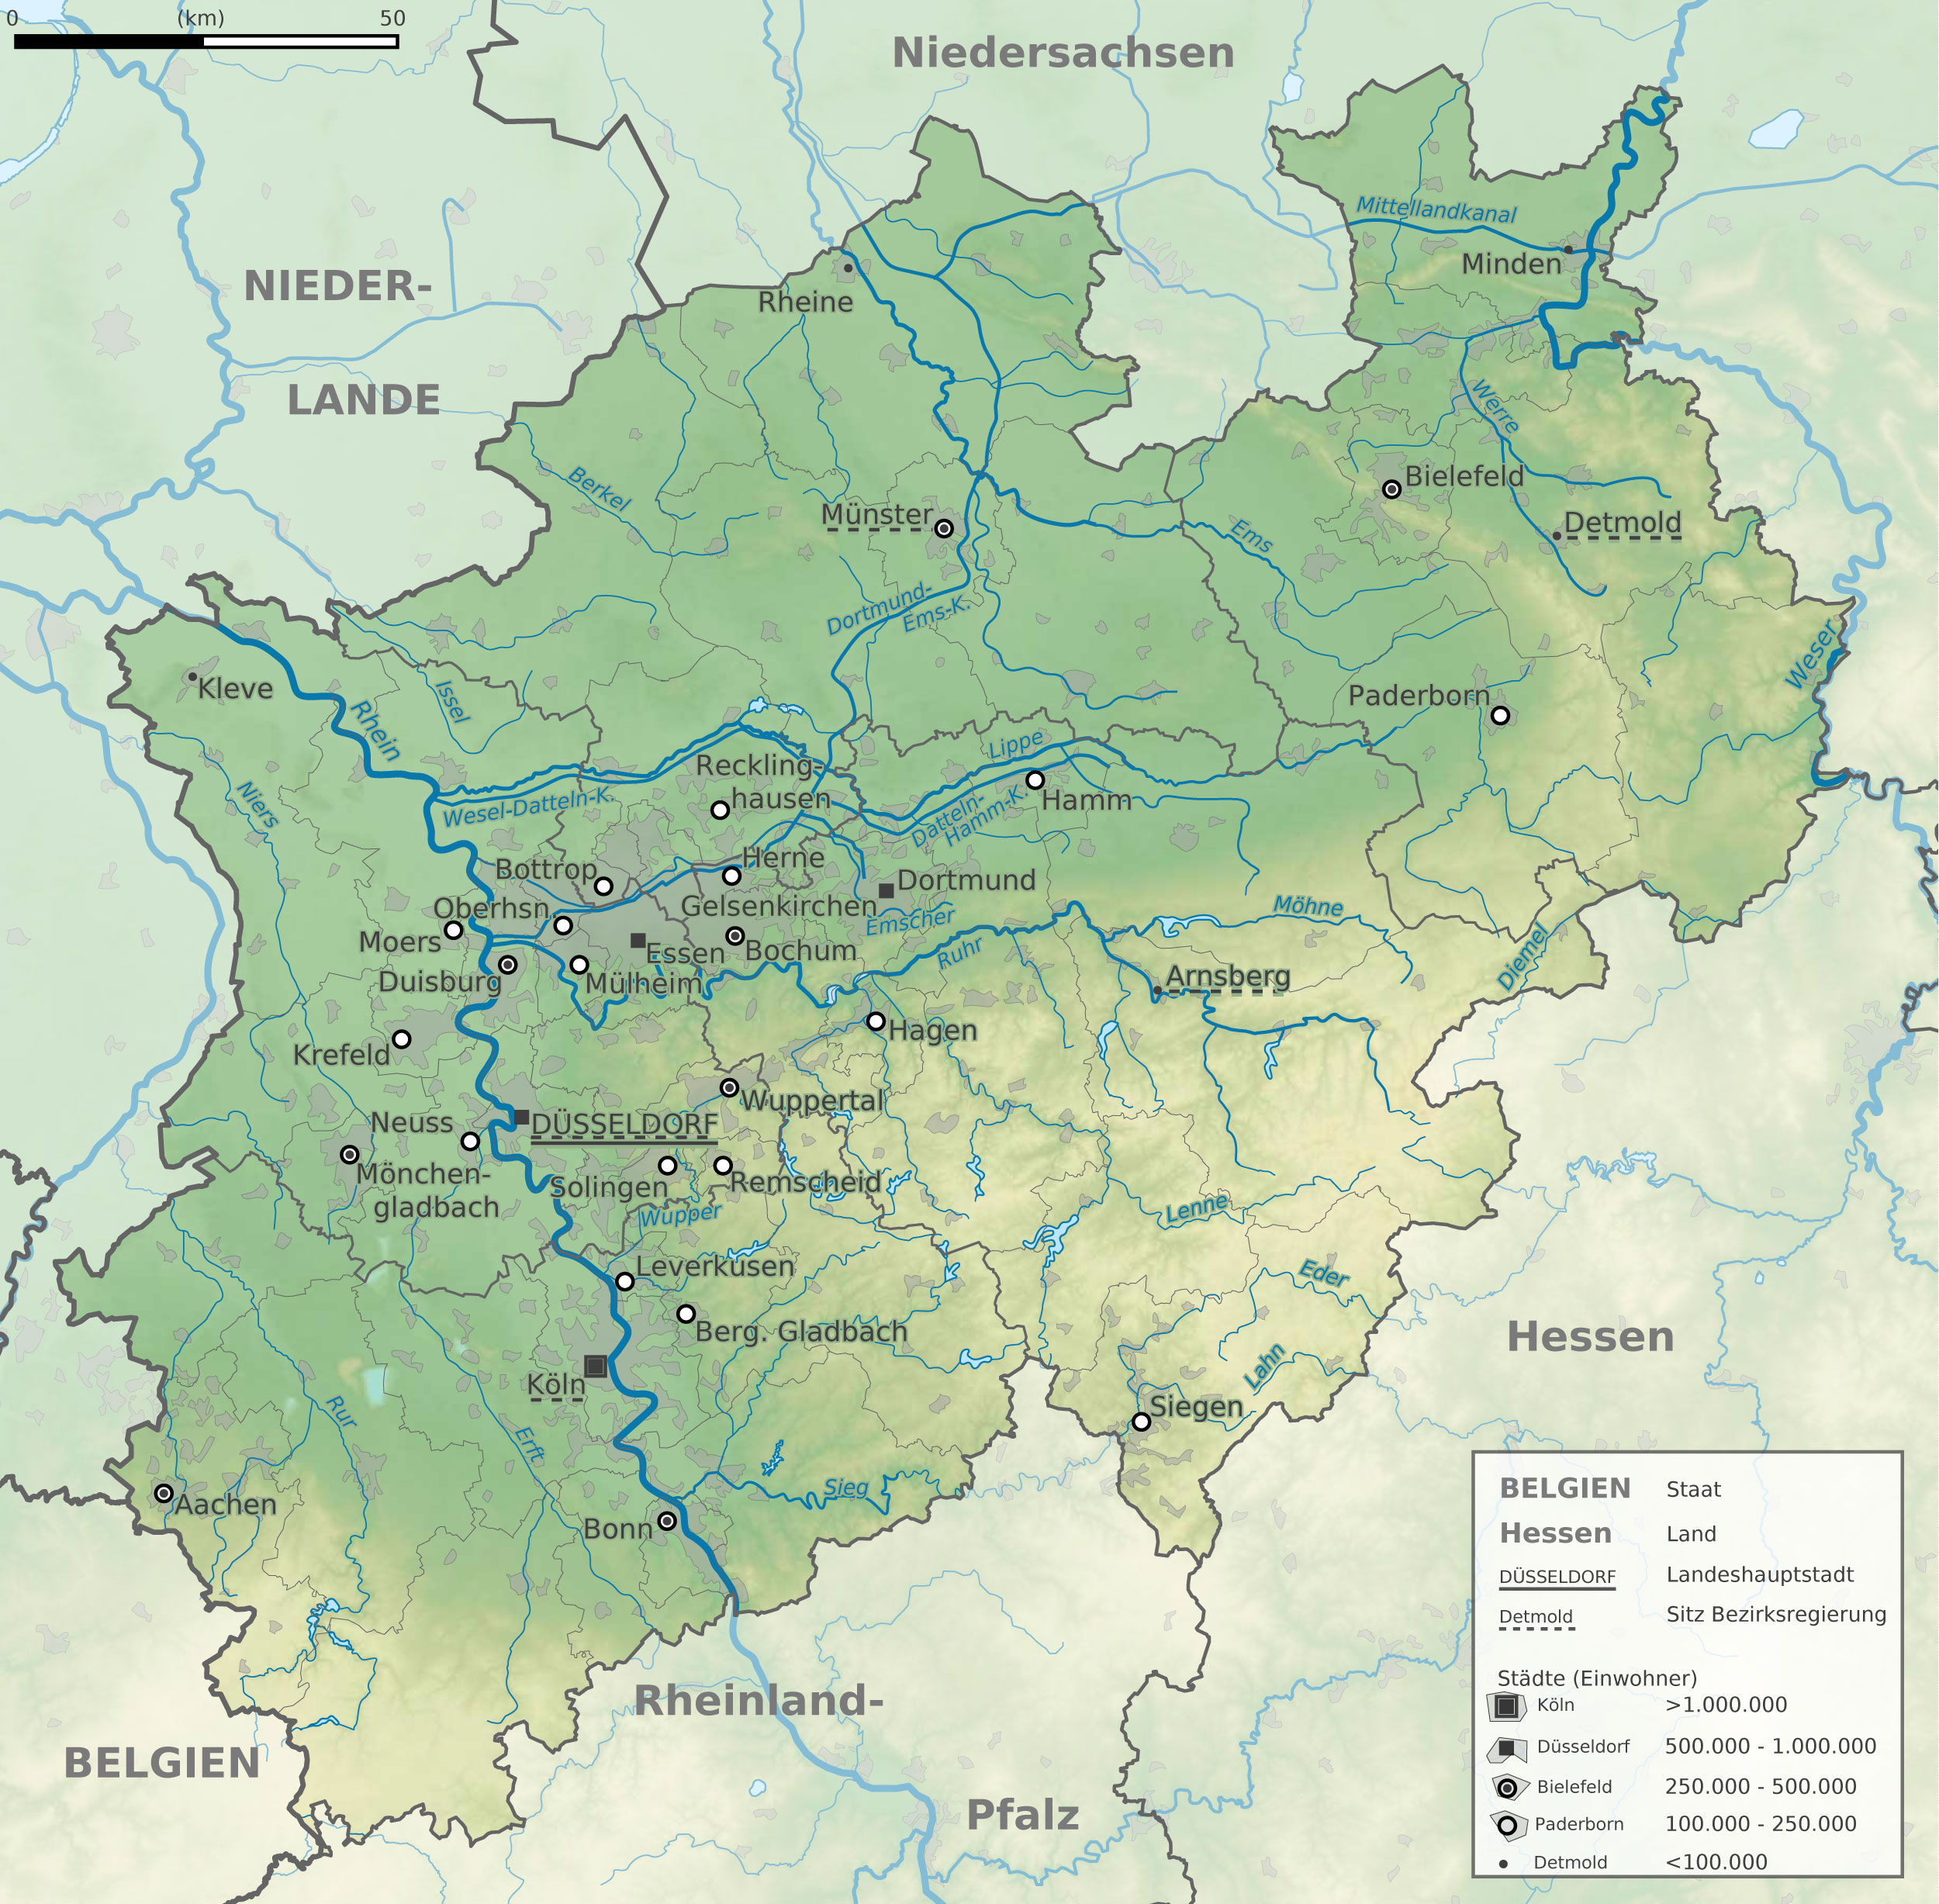 File:North Rhine-Westphalia topographic map 01.jpg - Wikimedia Commons